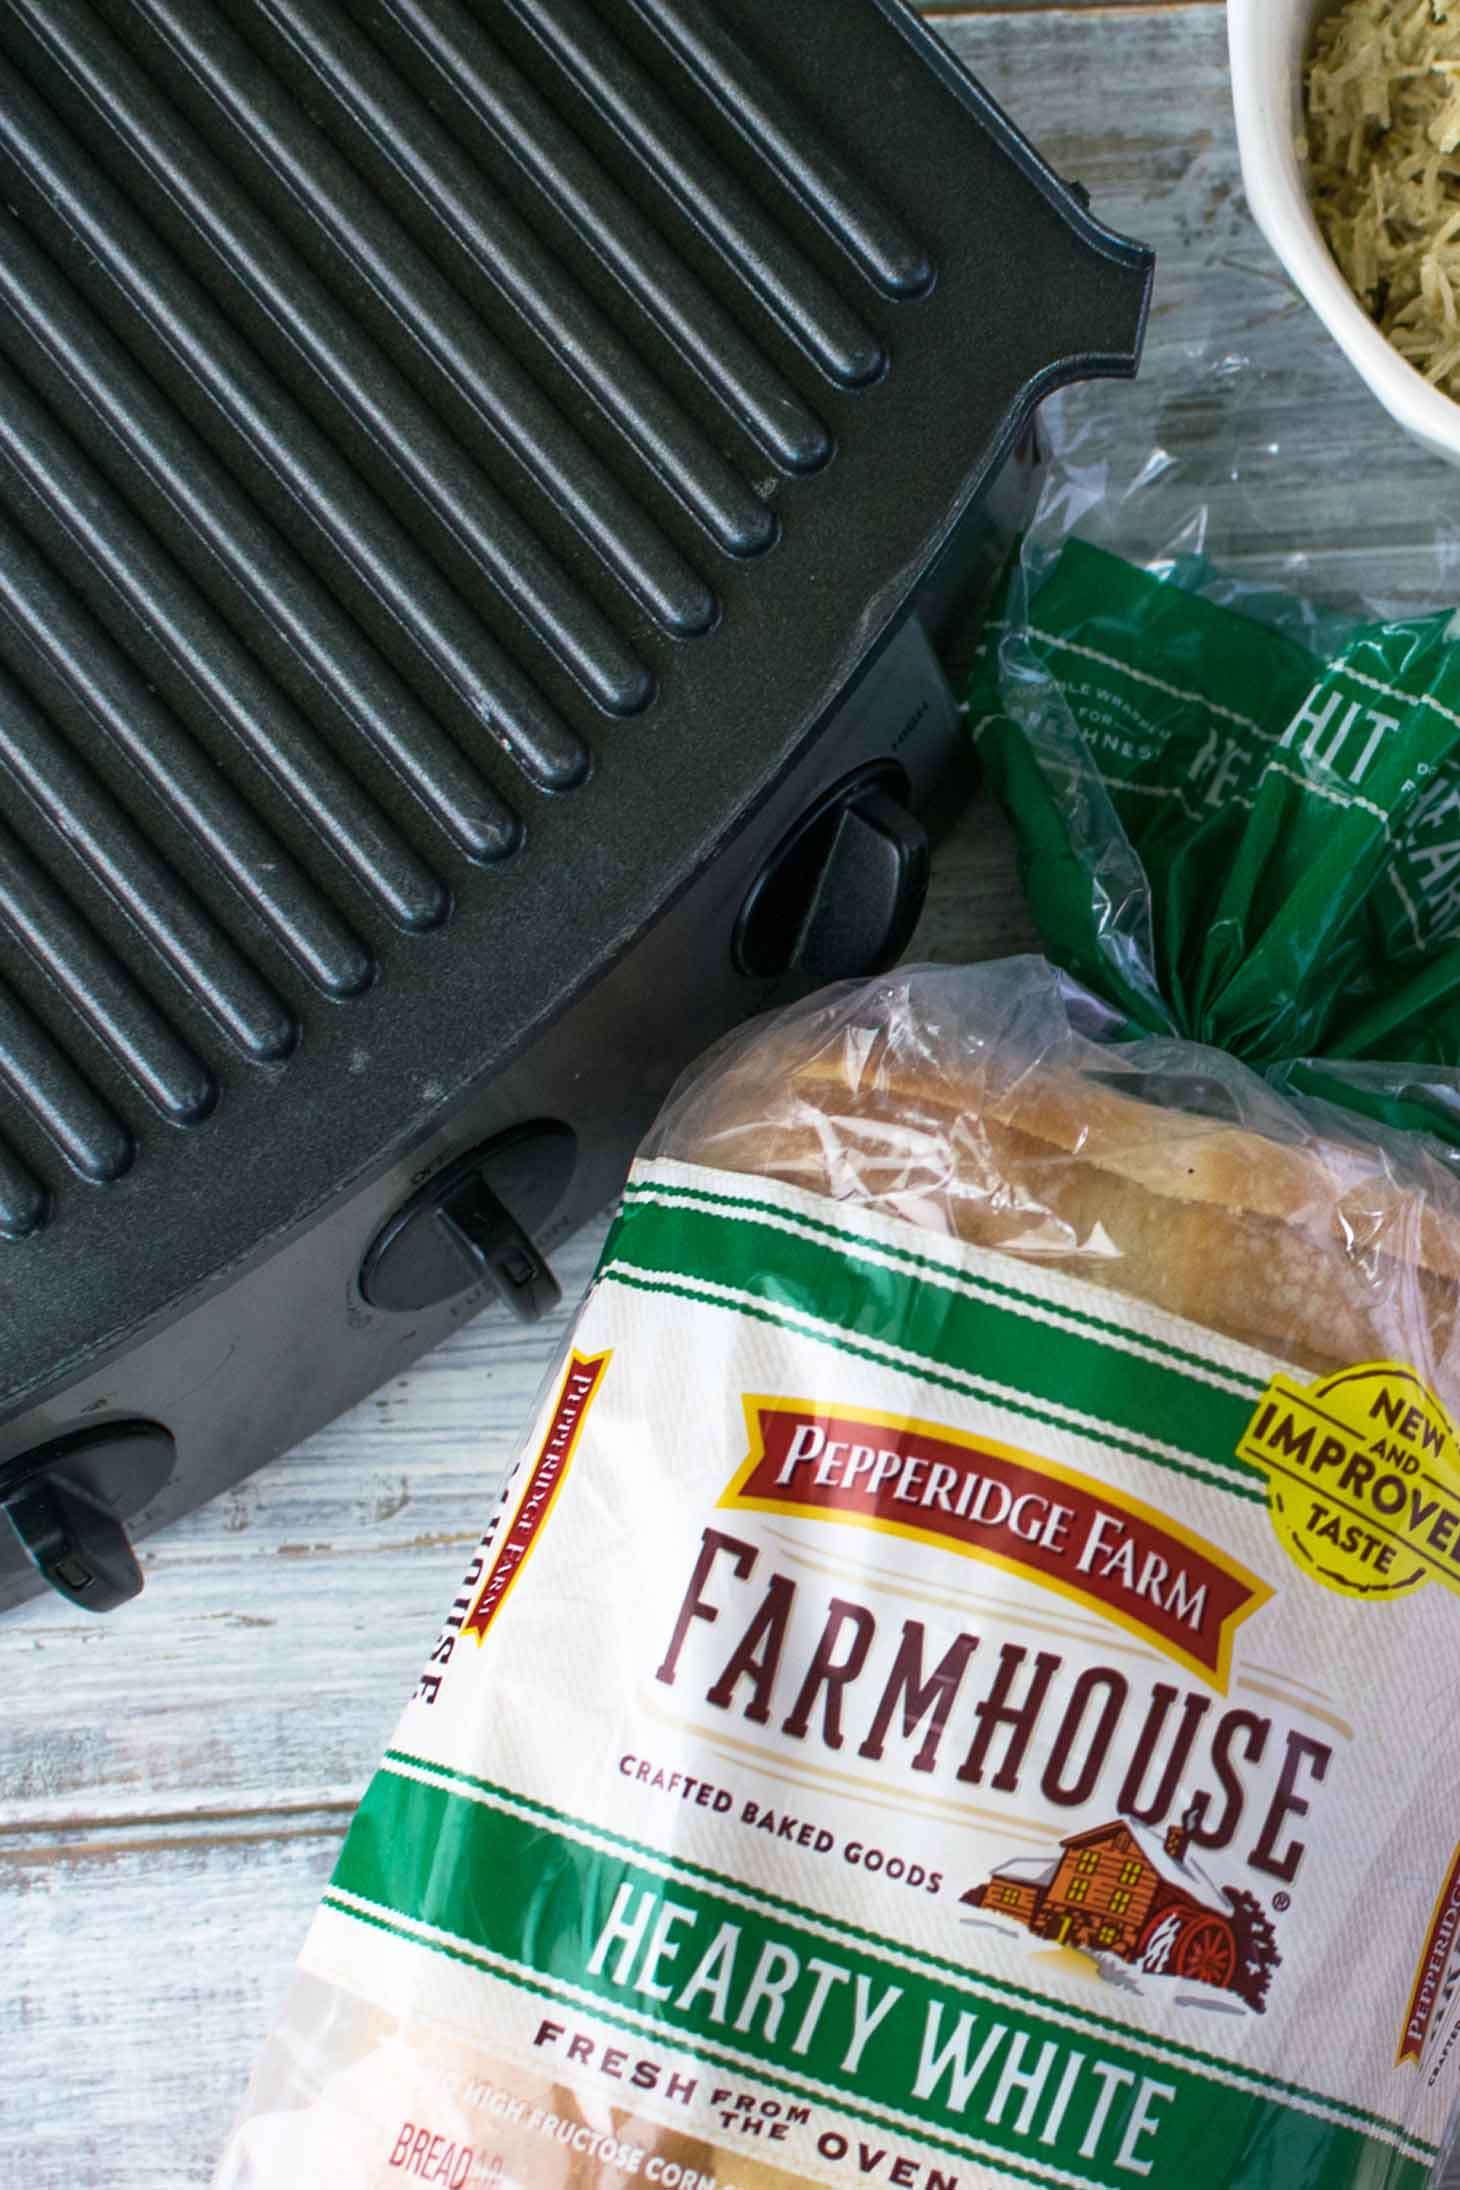 Pepperidge Farm® Farmhouse Hearty White Bread is perfect for making panini sandwiches